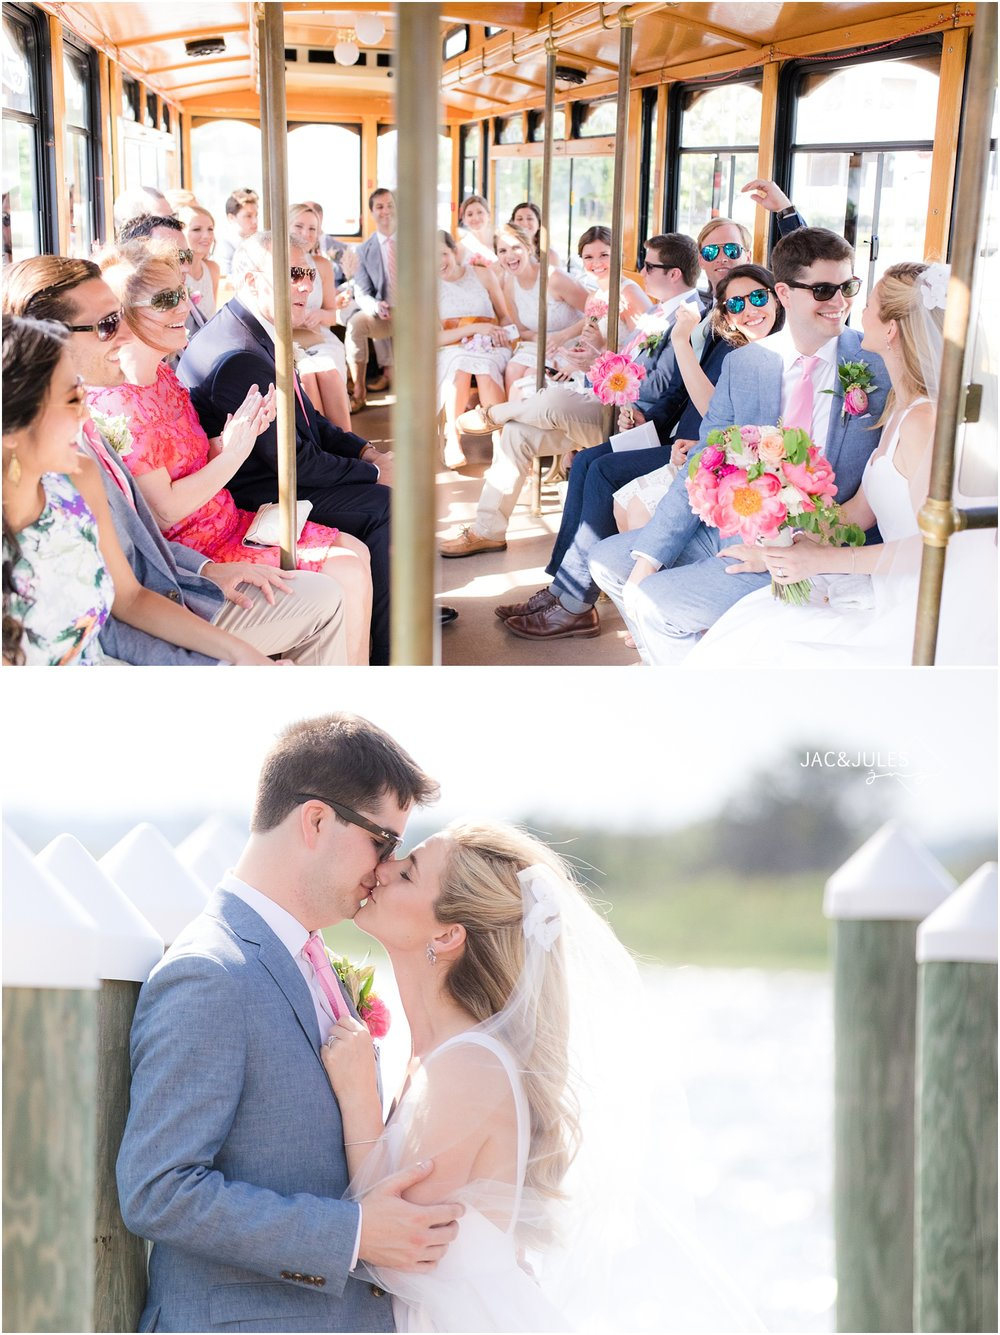 Trolley ride for bridal party for wedding at Mantoloking Yacht Club.